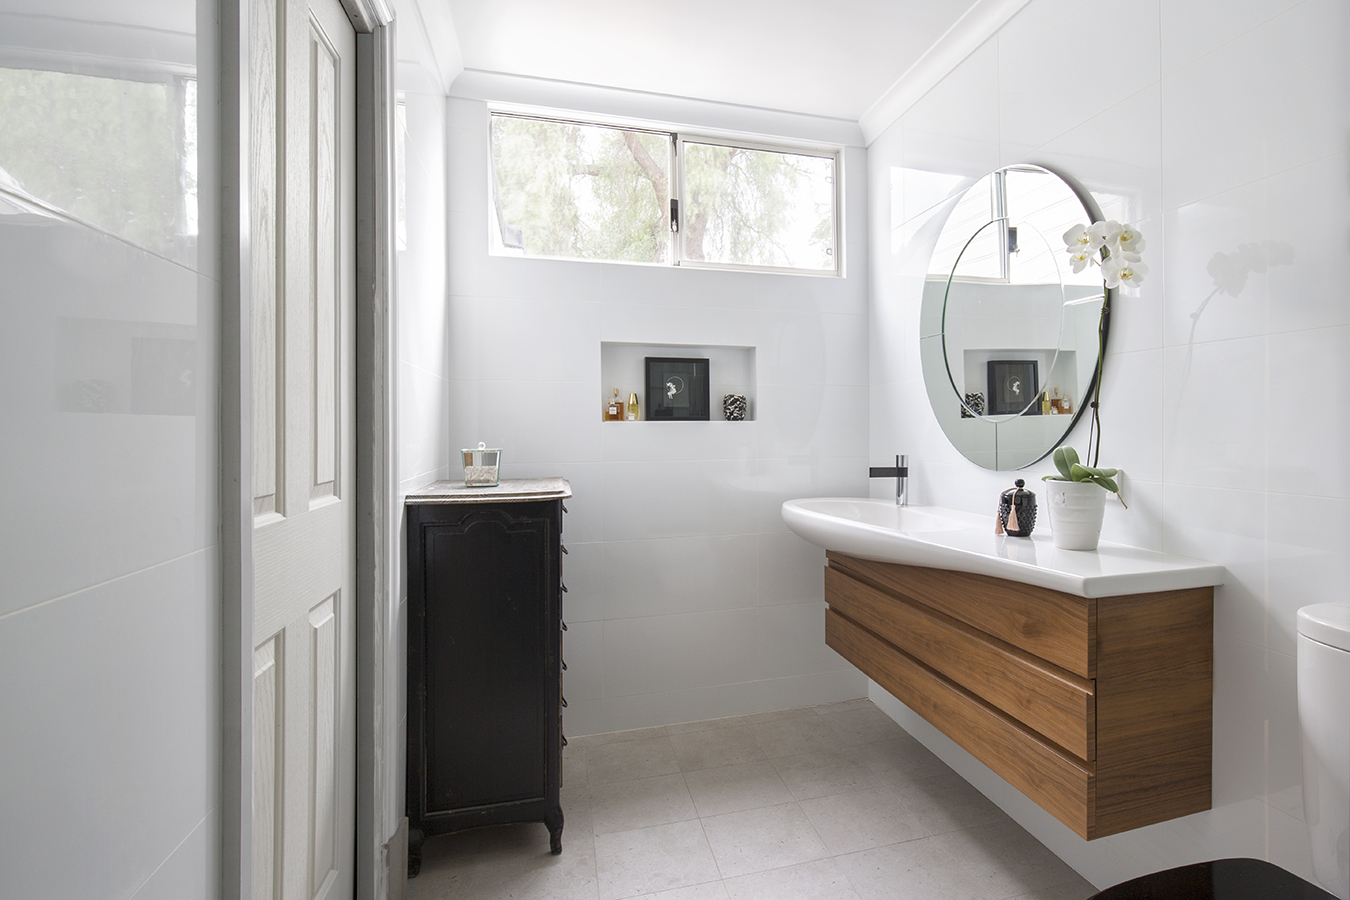 Bathroom renovations perth kps interiors for Bathroom design and renovations